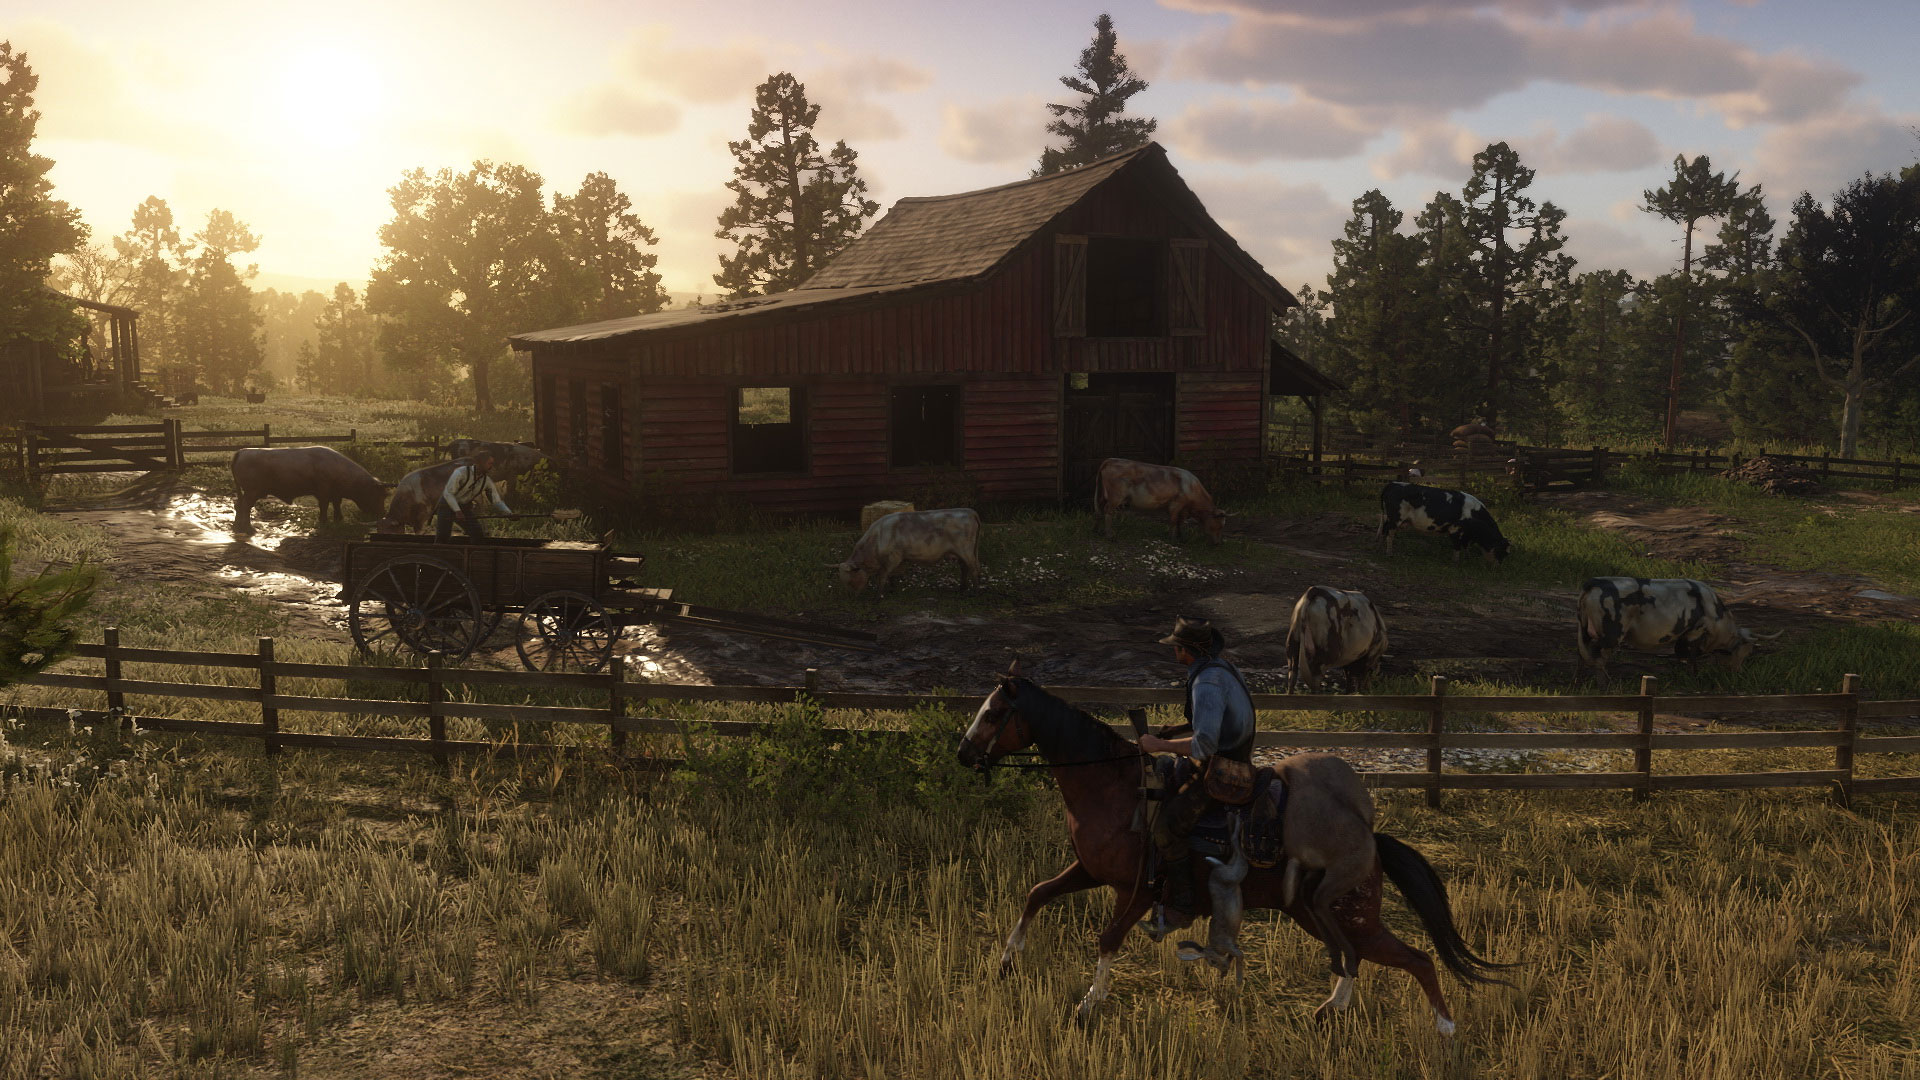 Buy Red Dead Redemption 2 at Monster Shop for PlayStation 4 and Xbox One